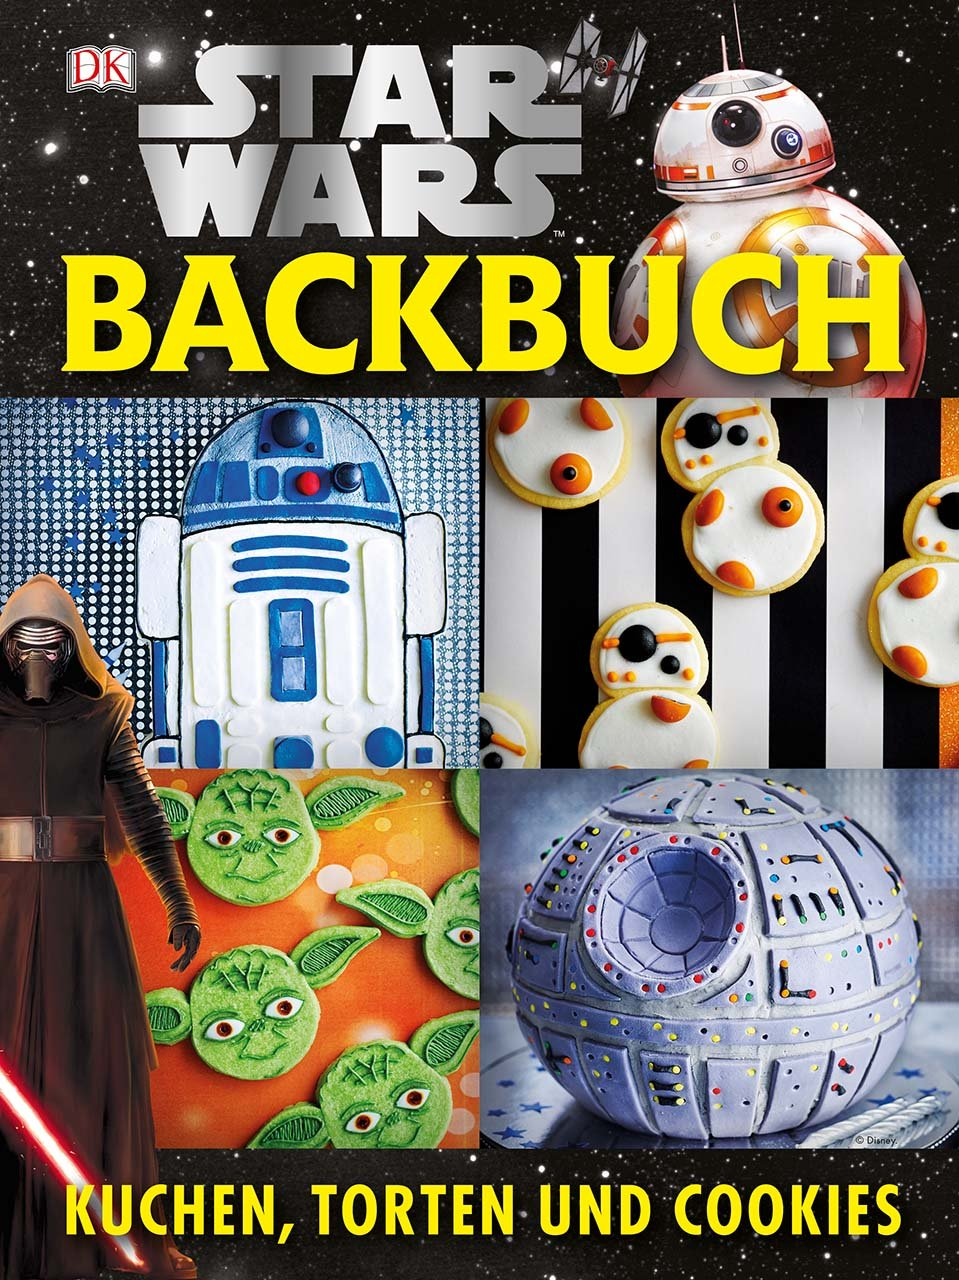 rezension star wars backbuch kuchen torten und cookies jedi bibliothek. Black Bedroom Furniture Sets. Home Design Ideas